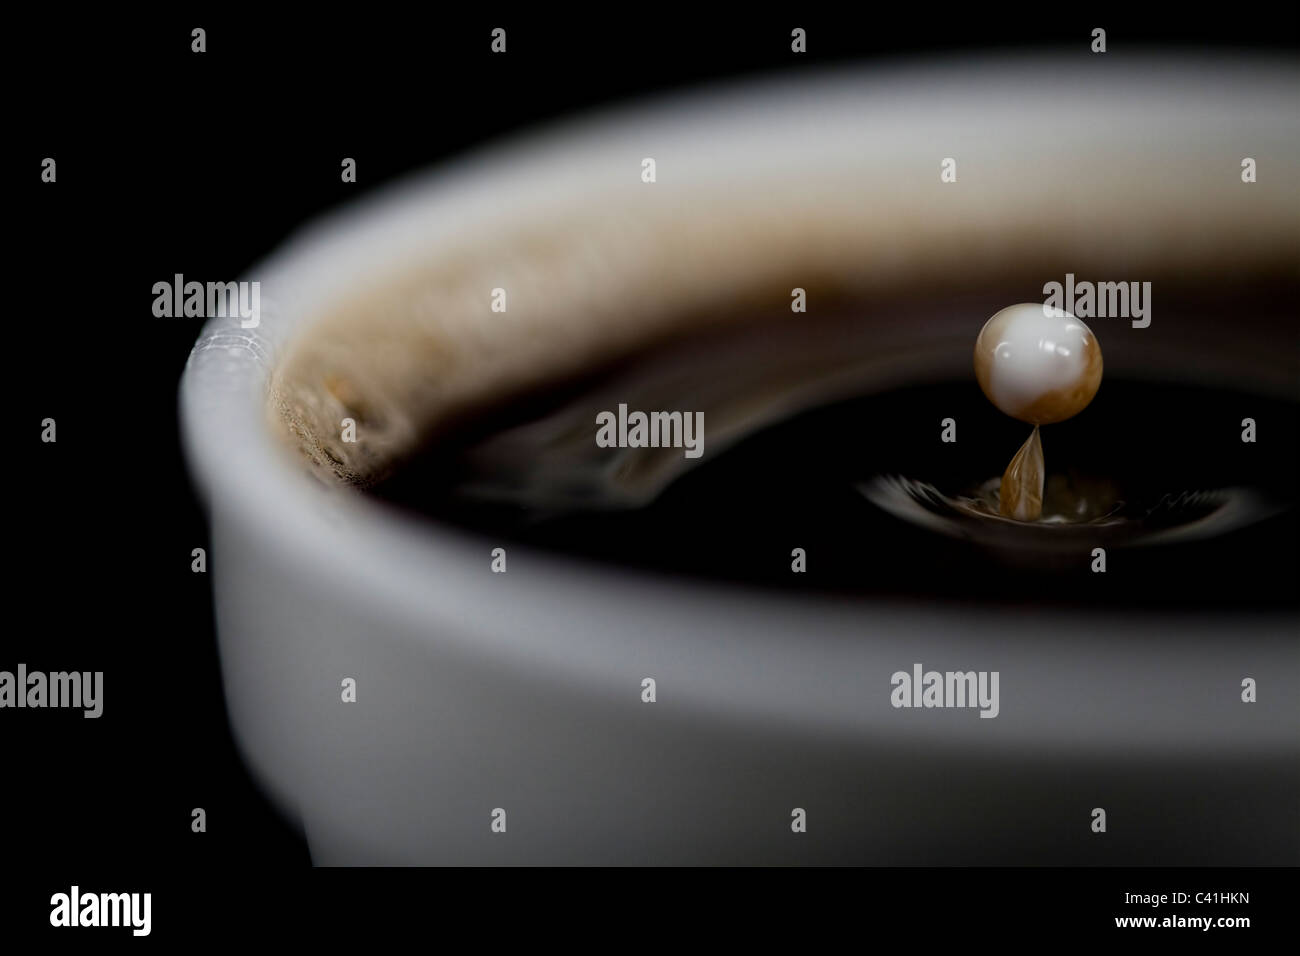 Milk drop in cup of coffee - Stock Image